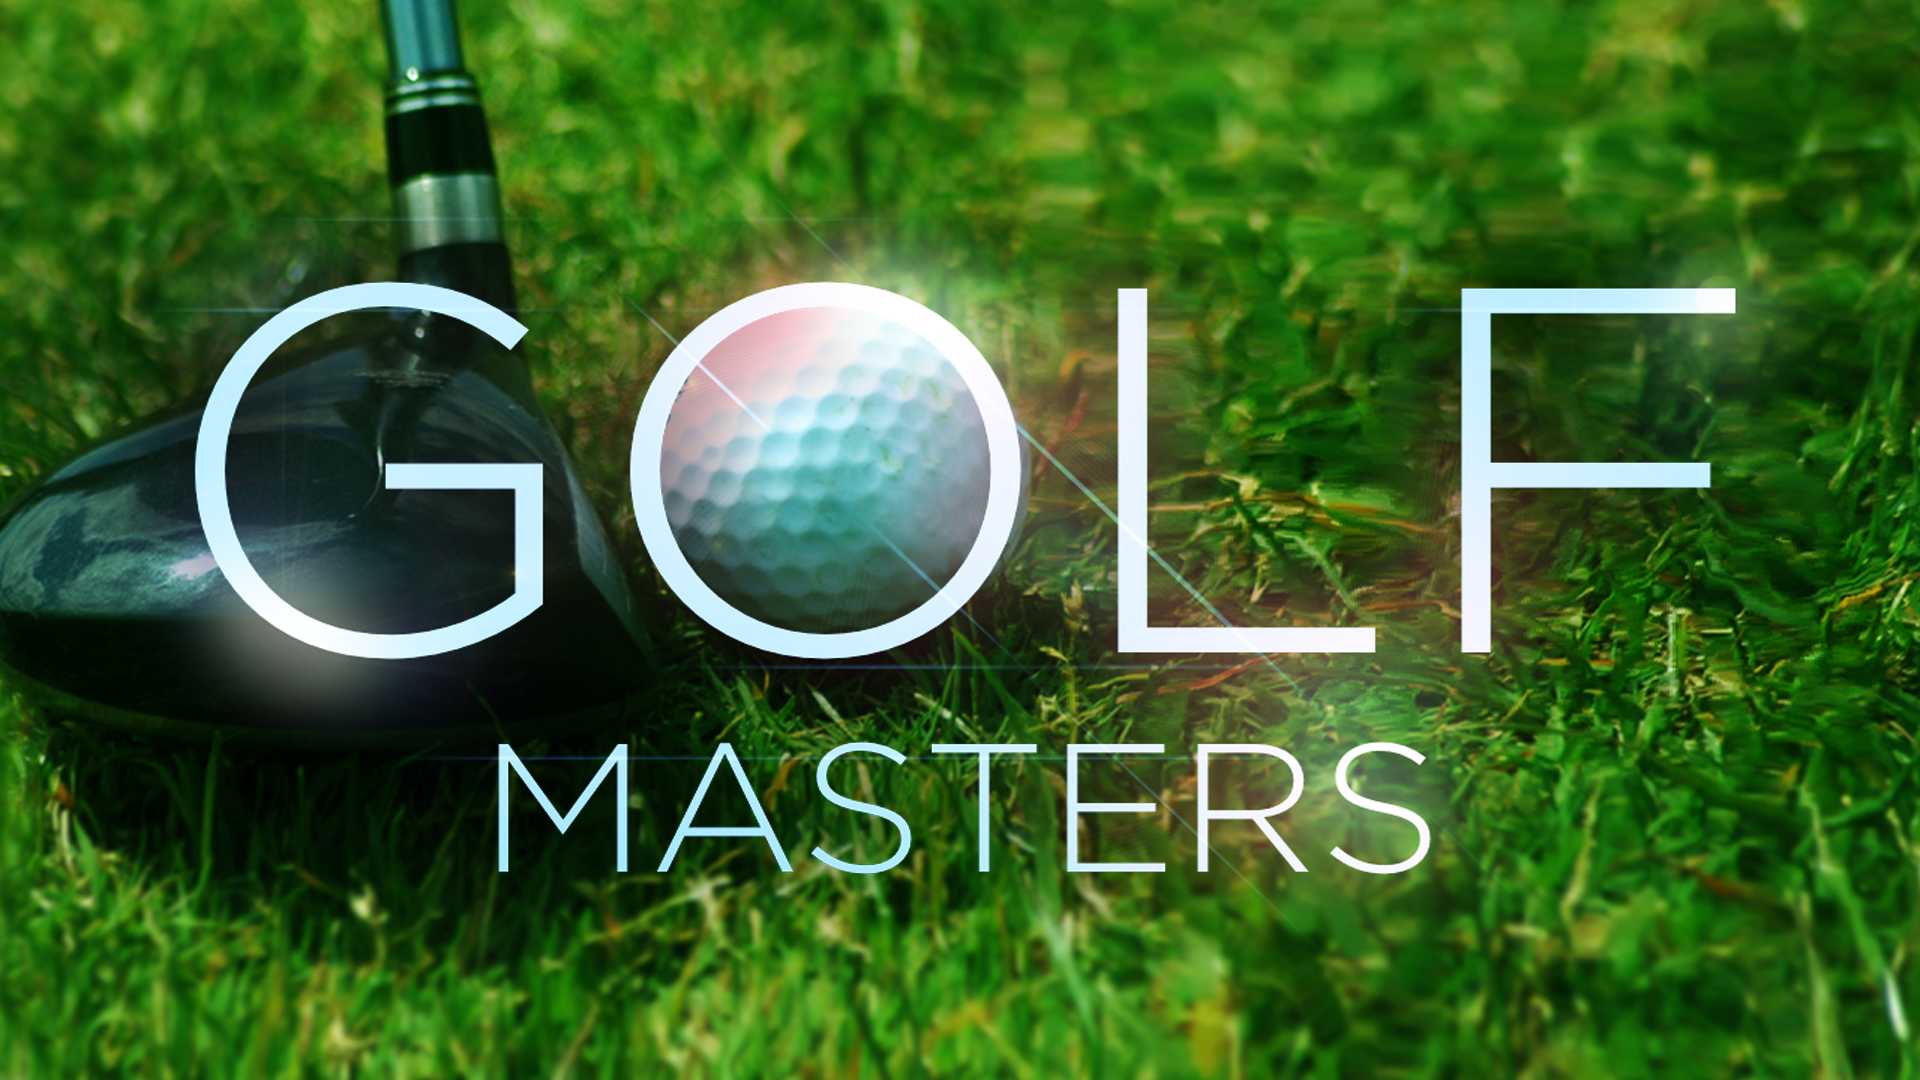 Golf Pro - Masters Tour screenshot 1